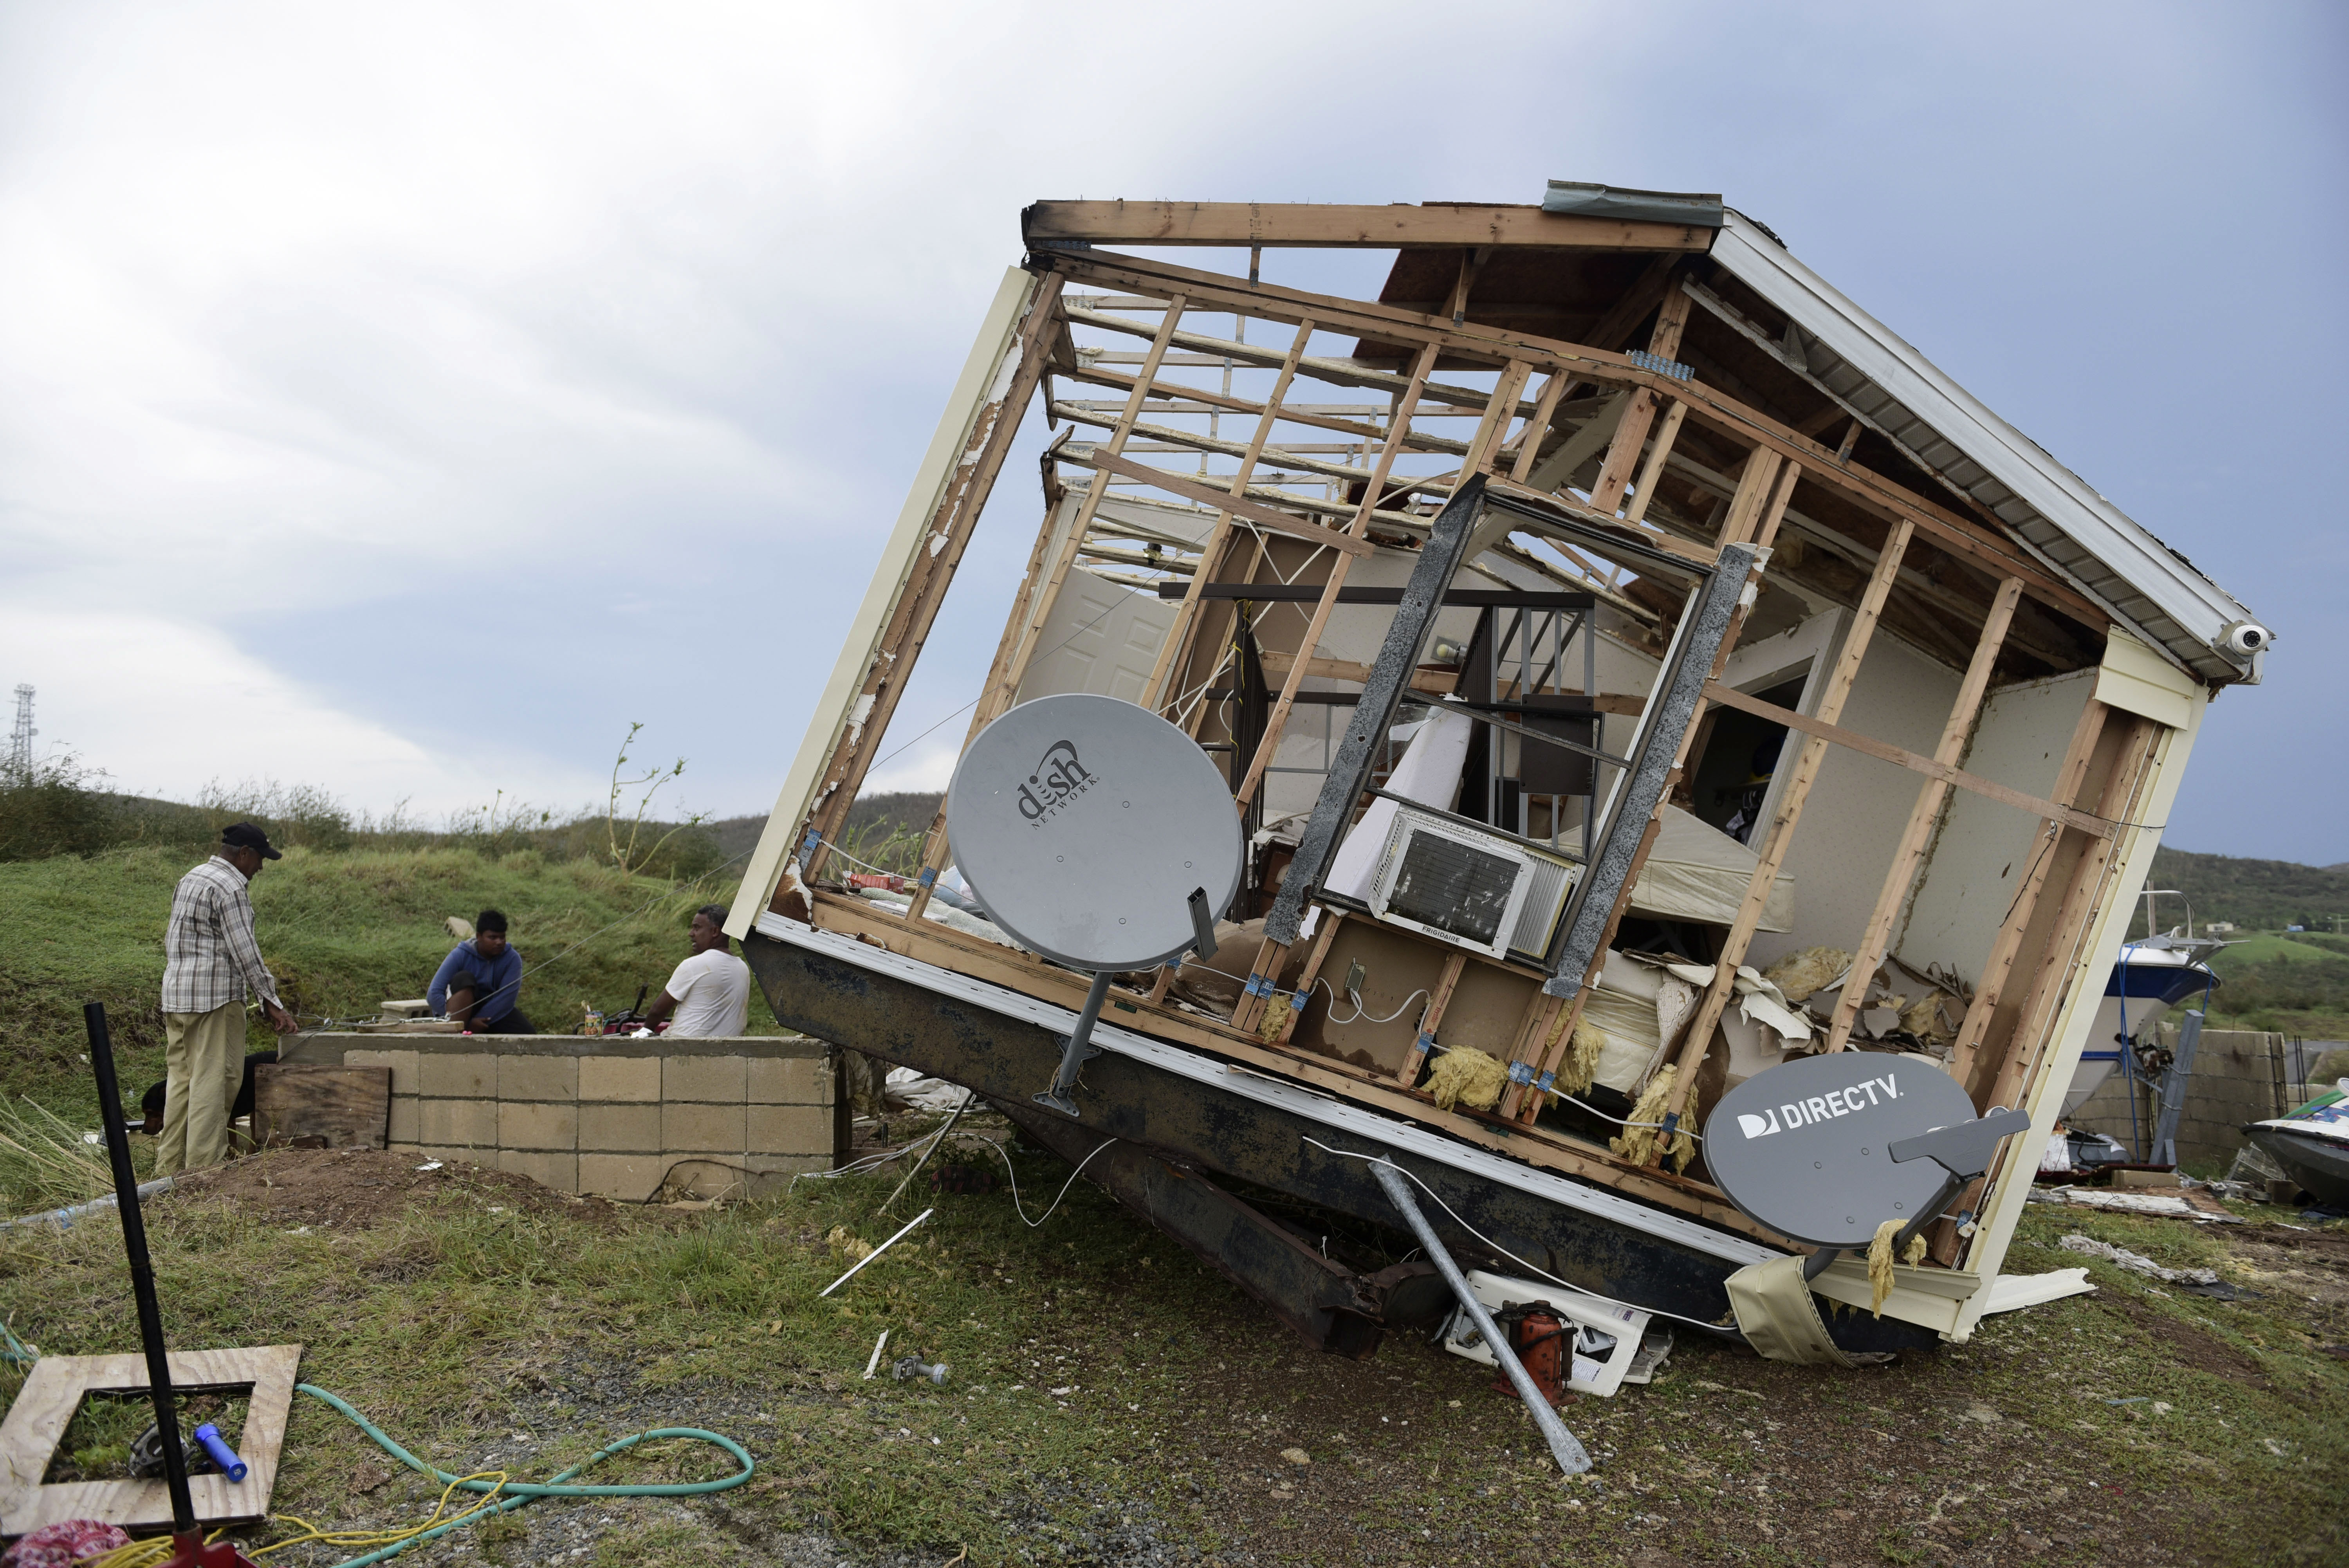 Juan Negron, right, prepares to start up a power generator in front of what's left of his damaged property, after the passage of Hurricane Irma, in the island of Culebra, Puerto Rico, Sept. 7, 2017.